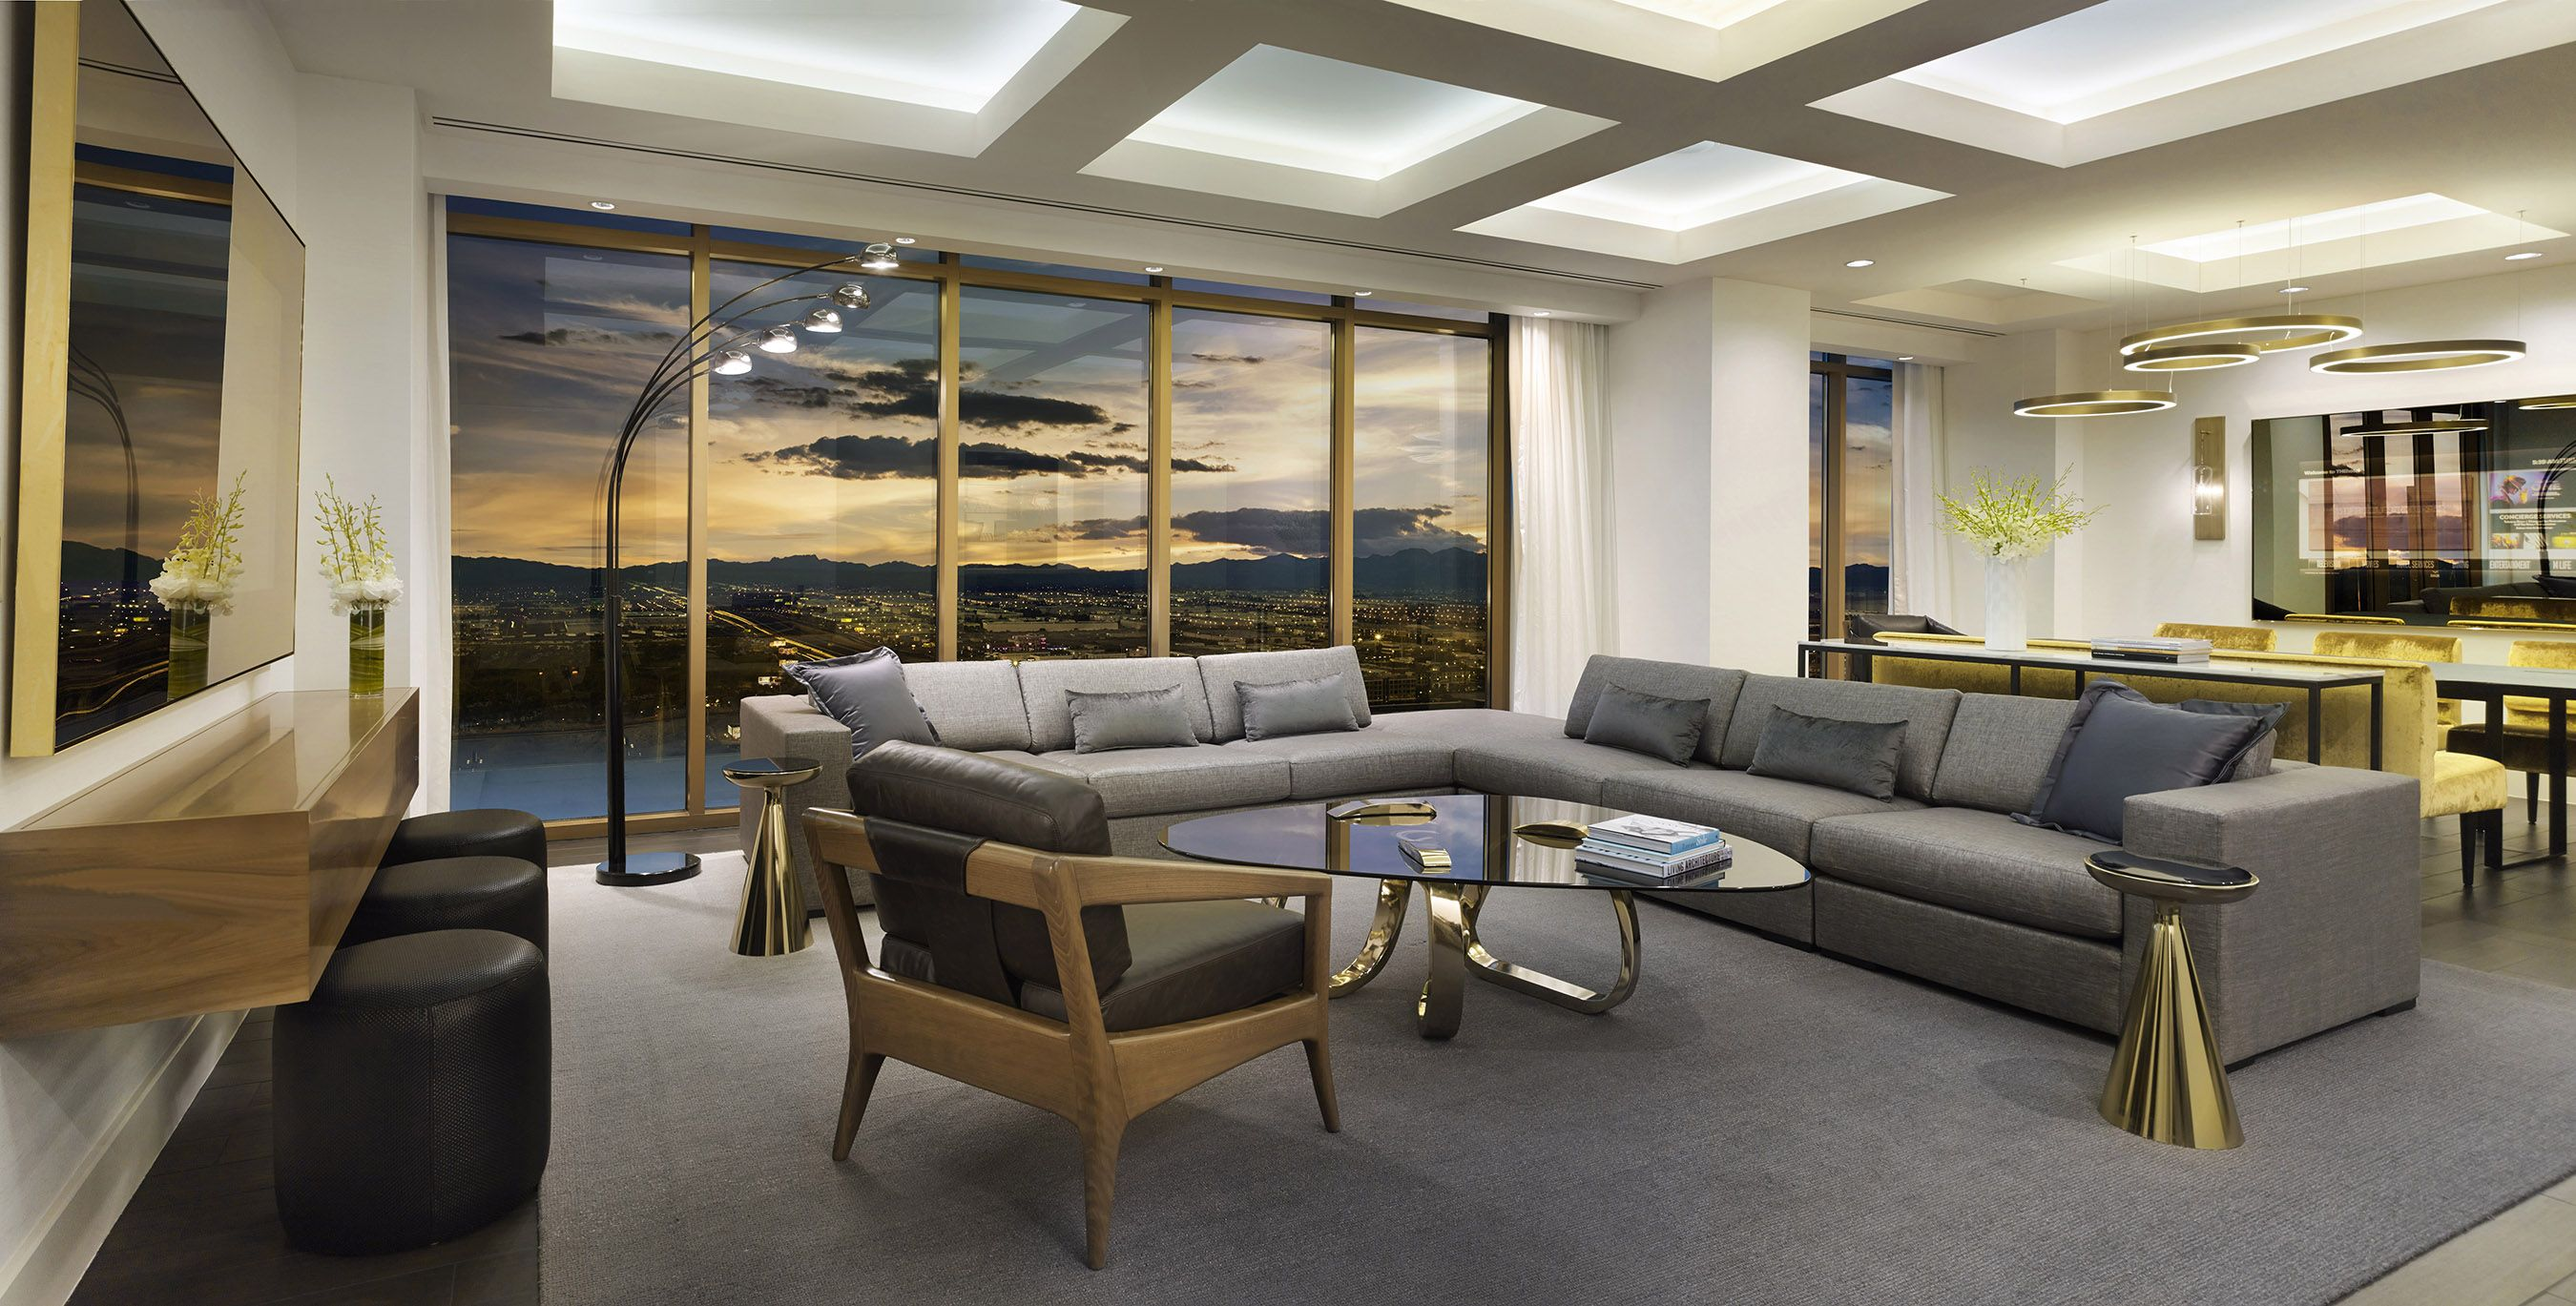 one of the suites found at the delano las vegas hotel. for more